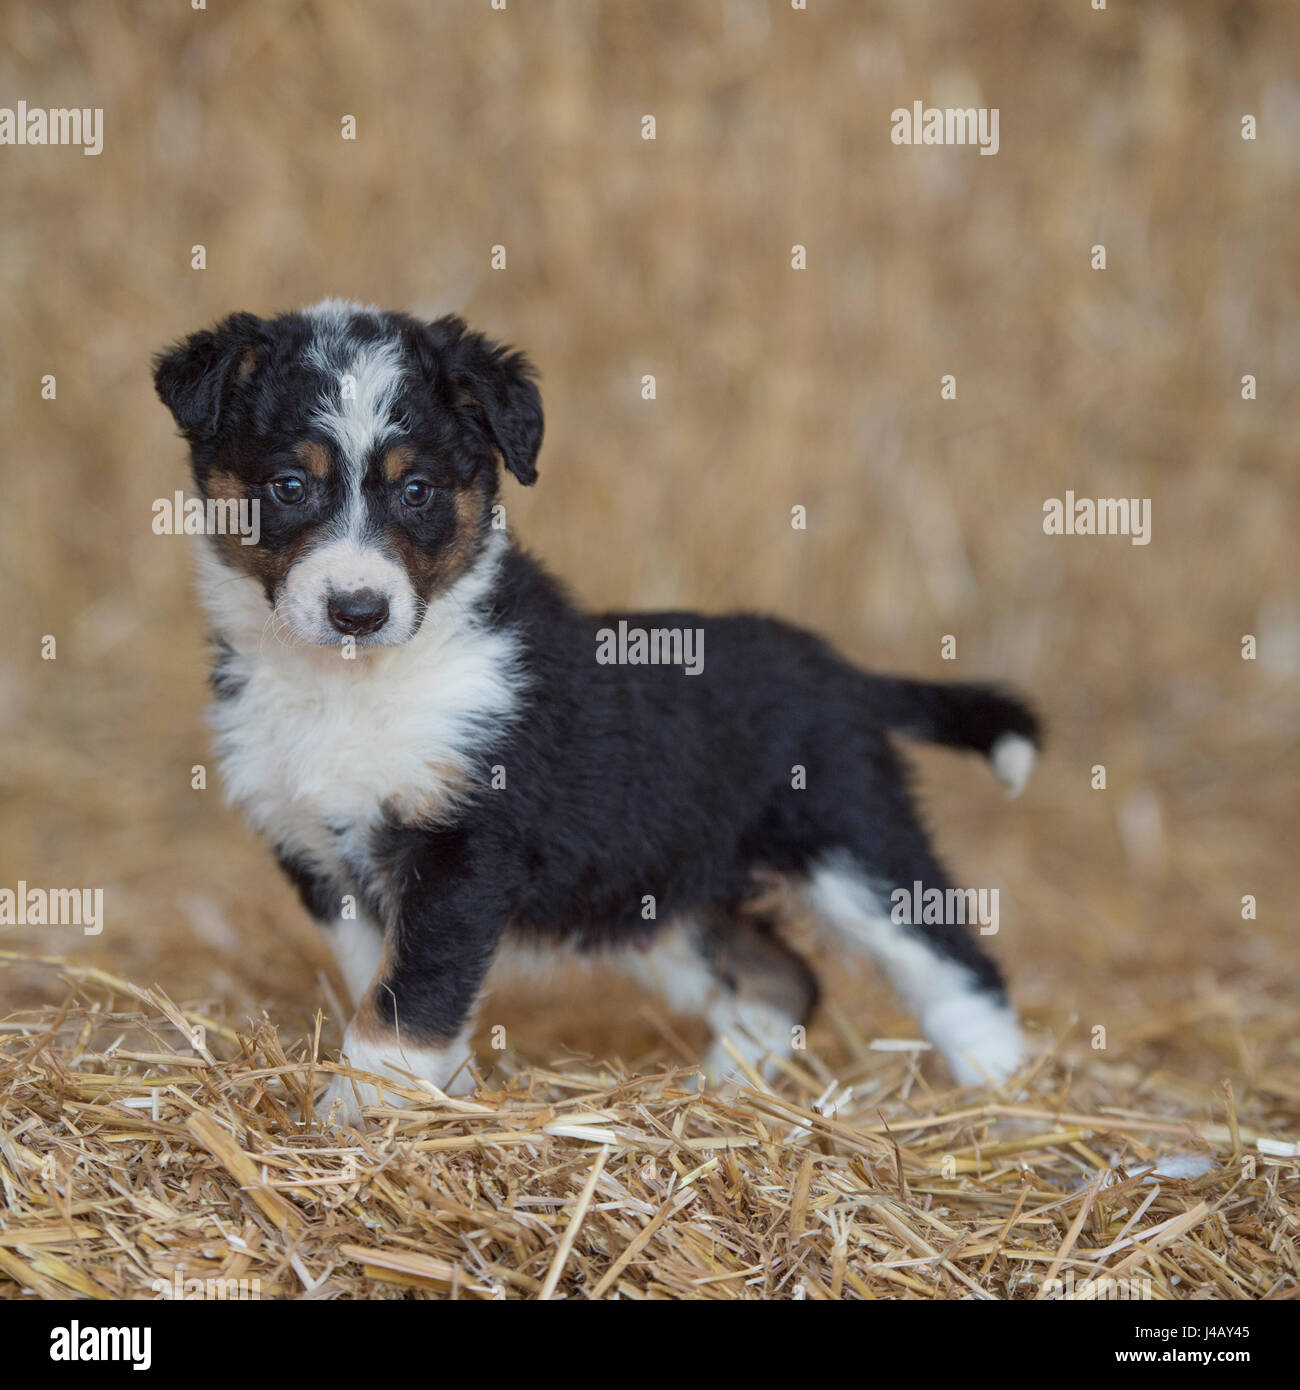 border collie, puppy - Stock Image